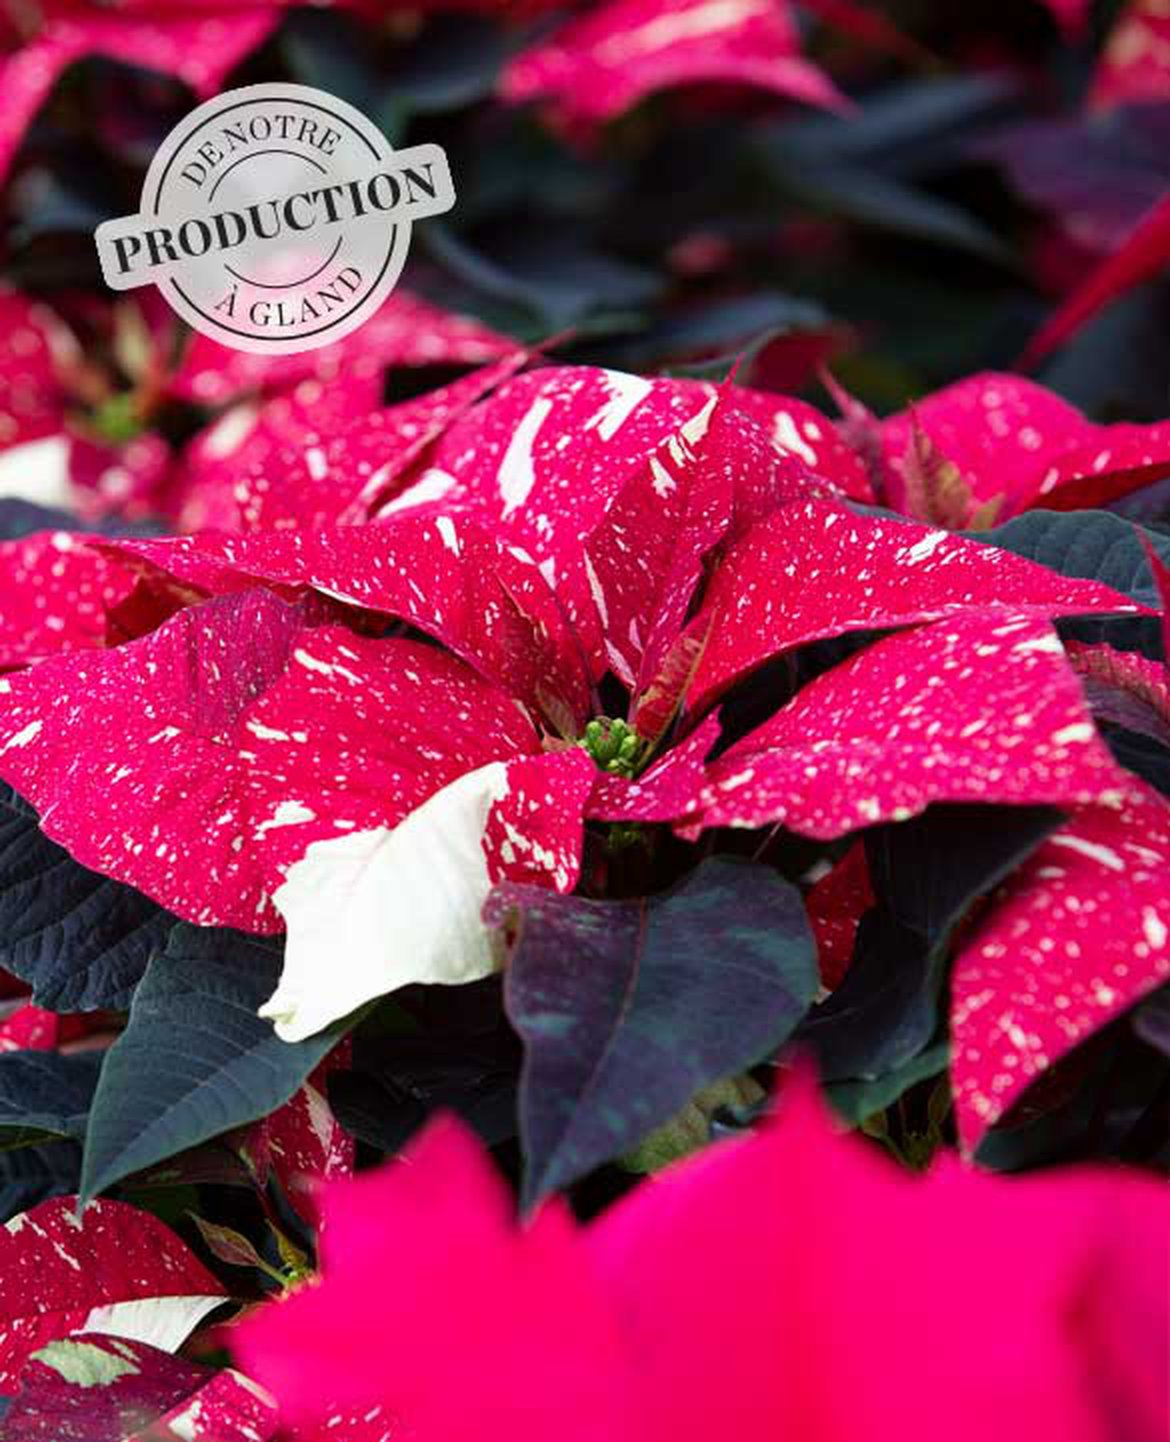 Poinsettias de notre production